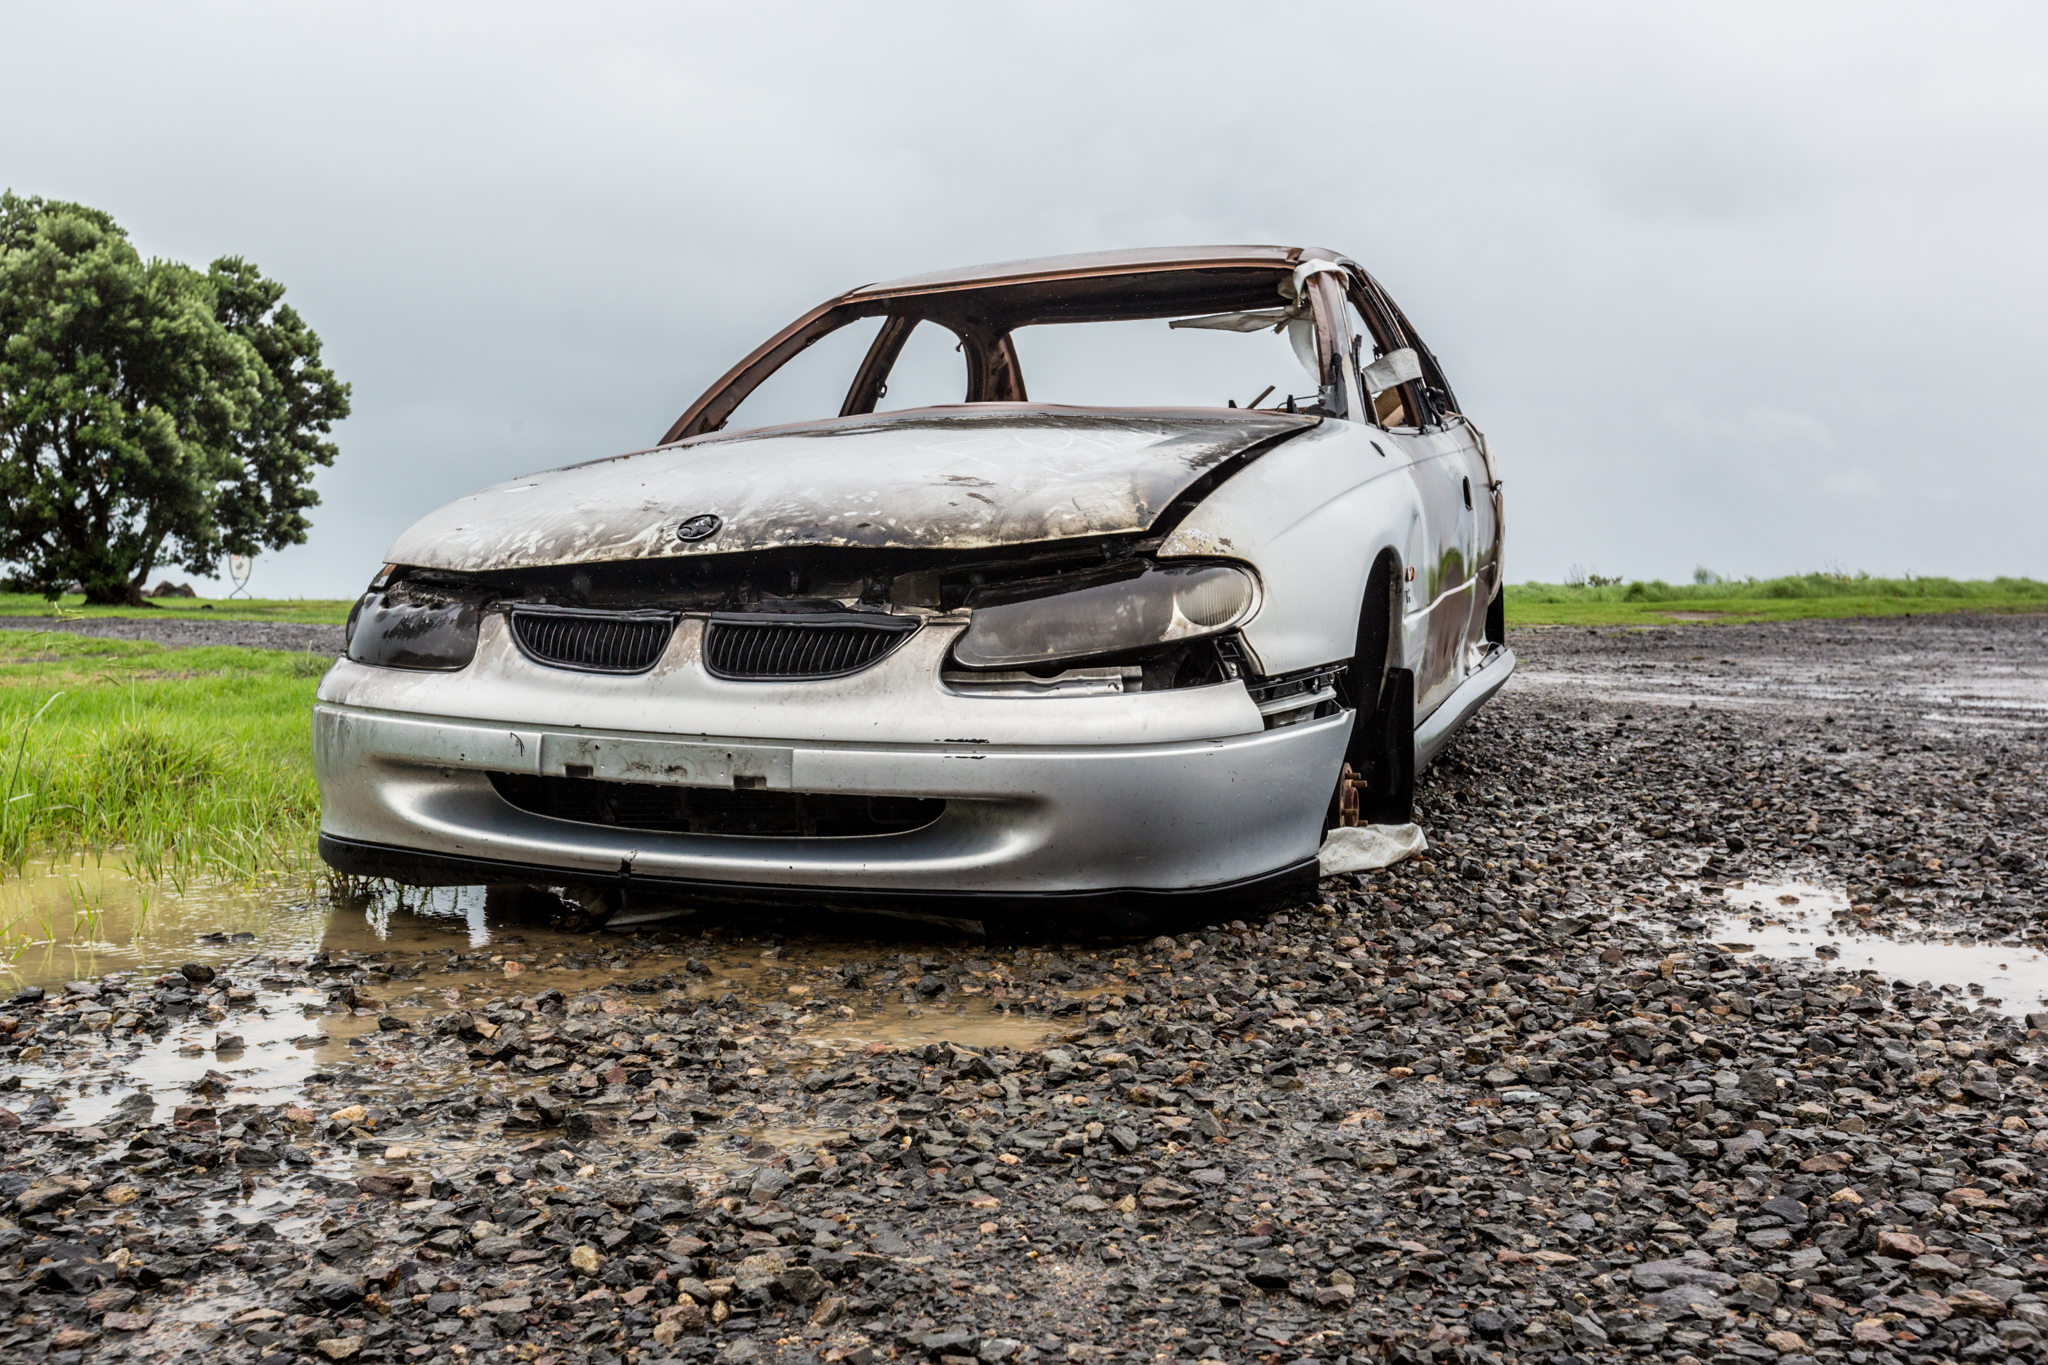 Burnt Out Car While Driving the Coromandel Peninsula